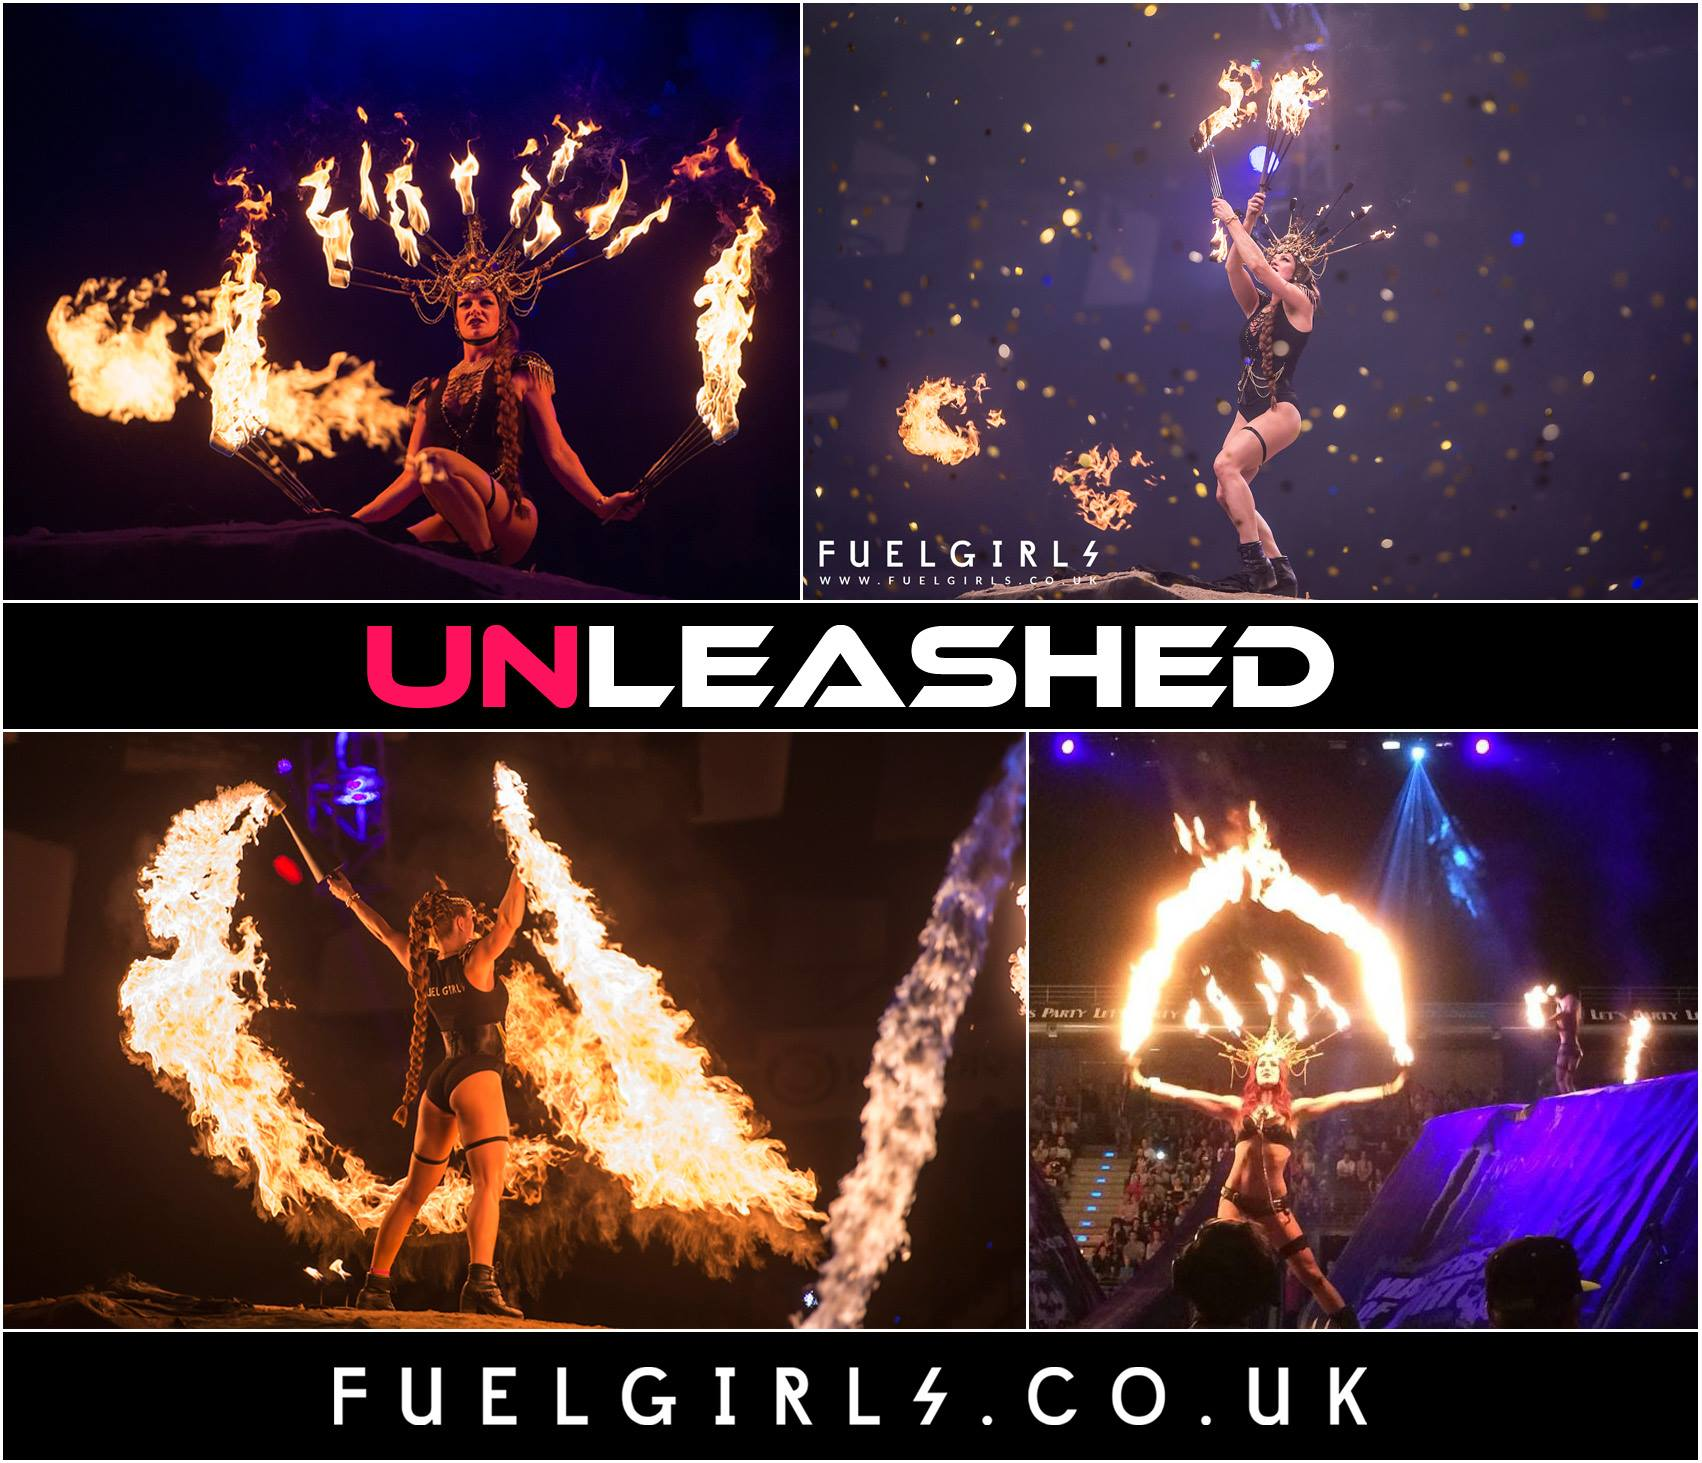 The Fuel Girls spectacular performance at UNLEASHED 5 Years Anniversary